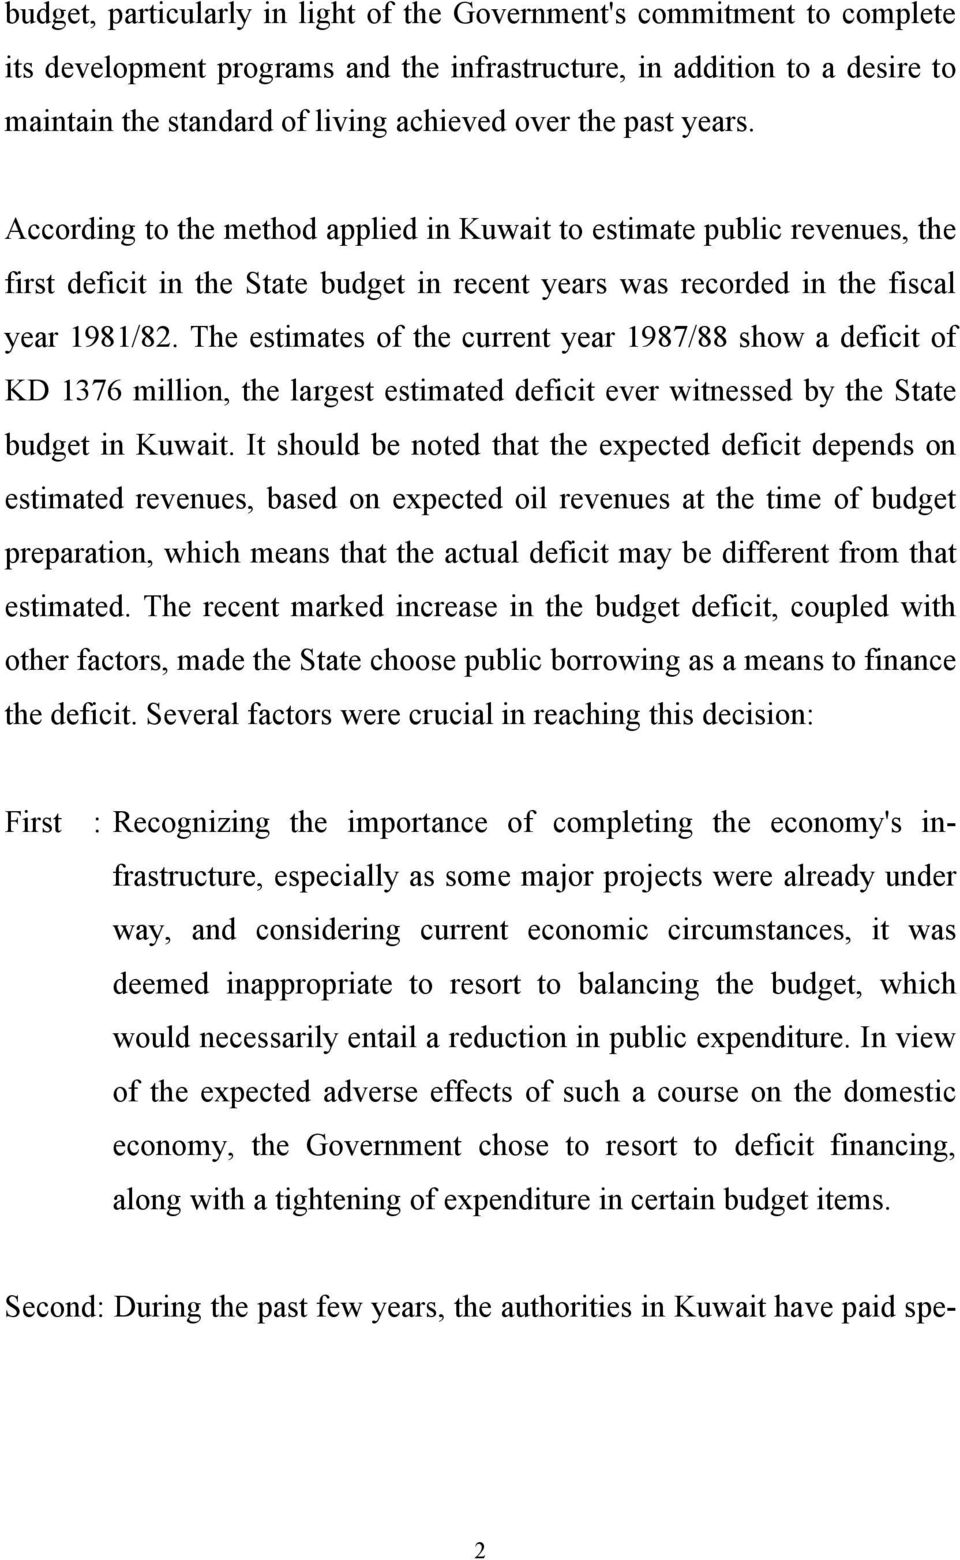 The estimates of the current year 1987/88 show a deficit of KD 1376 million, the largest estimated deficit ever witnessed by the State budget in Kuwait.